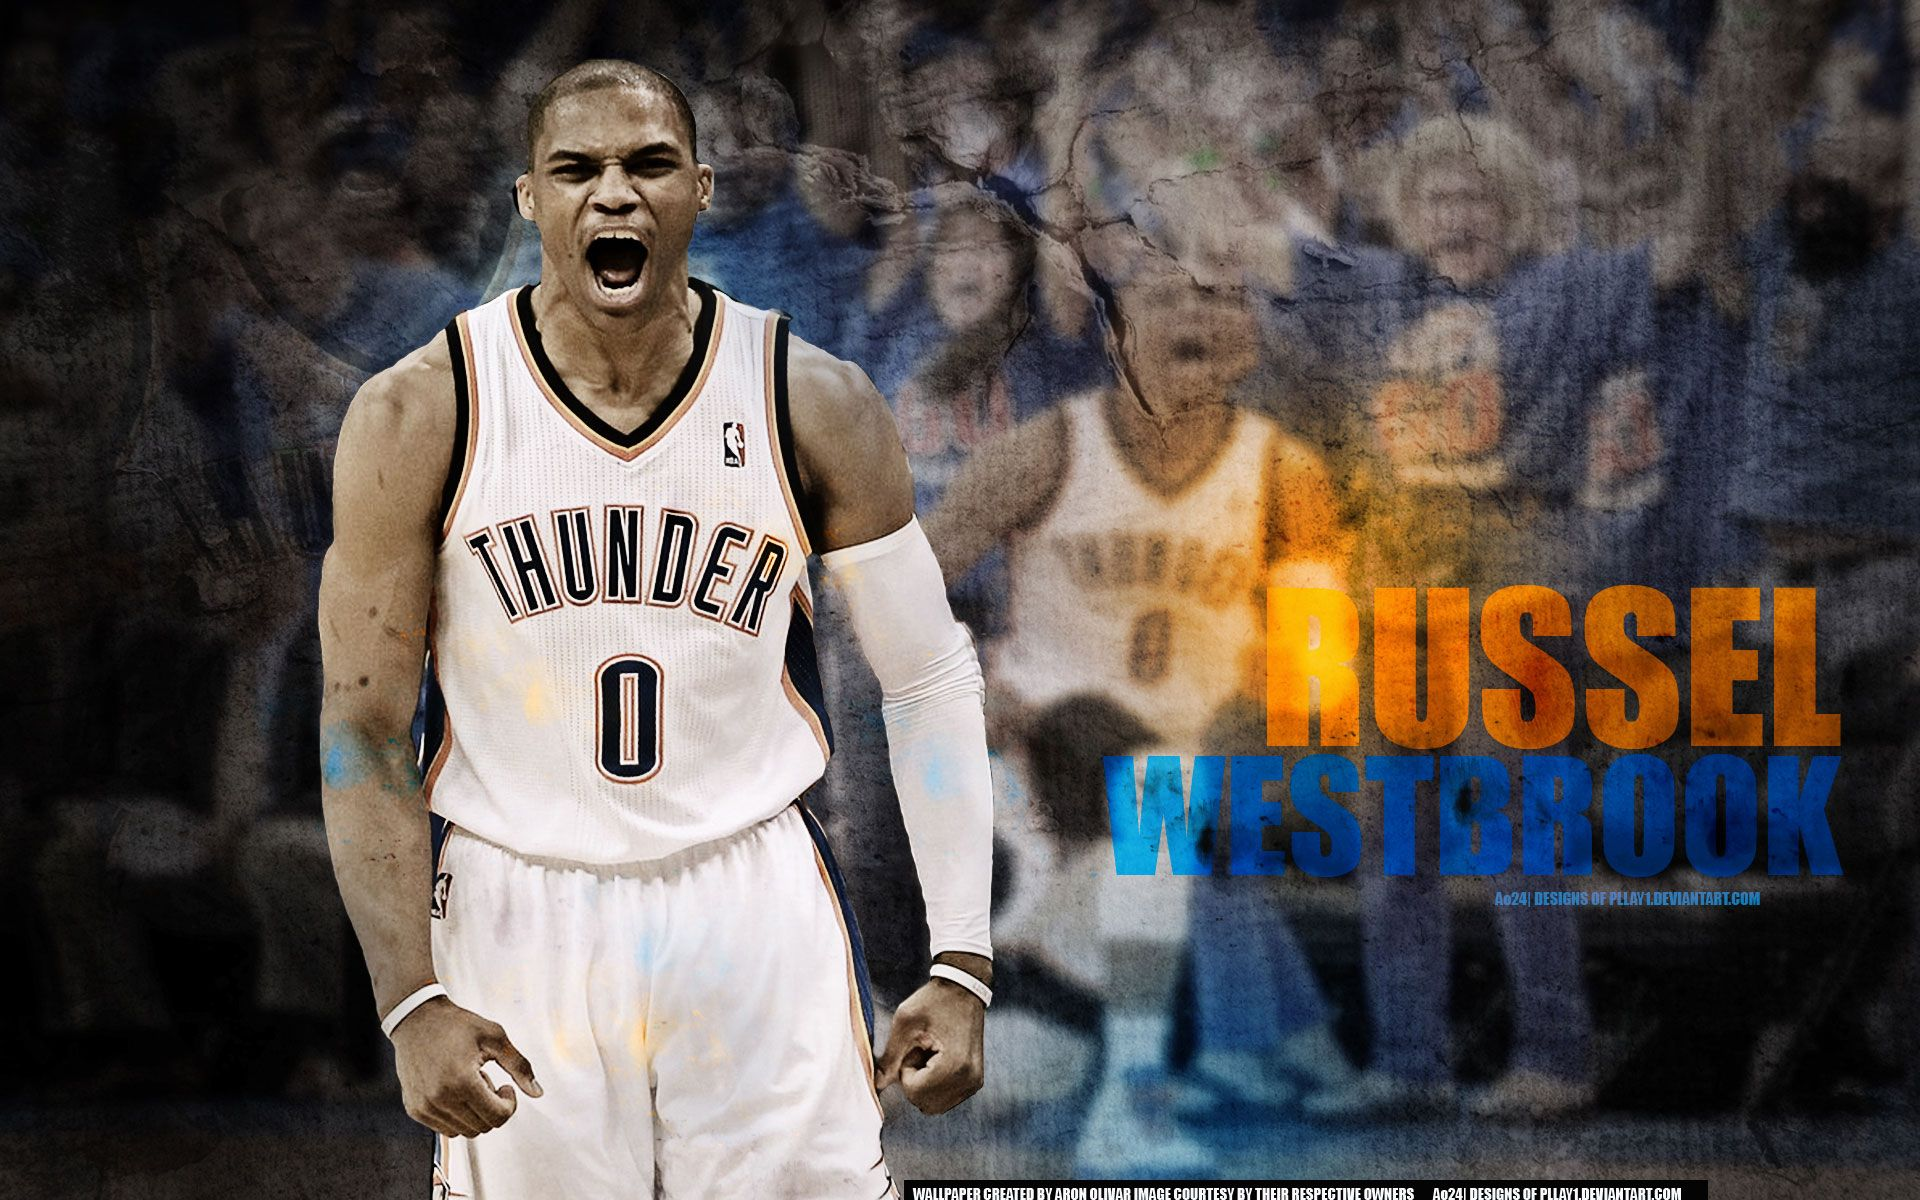 awsome russle westbrook picture